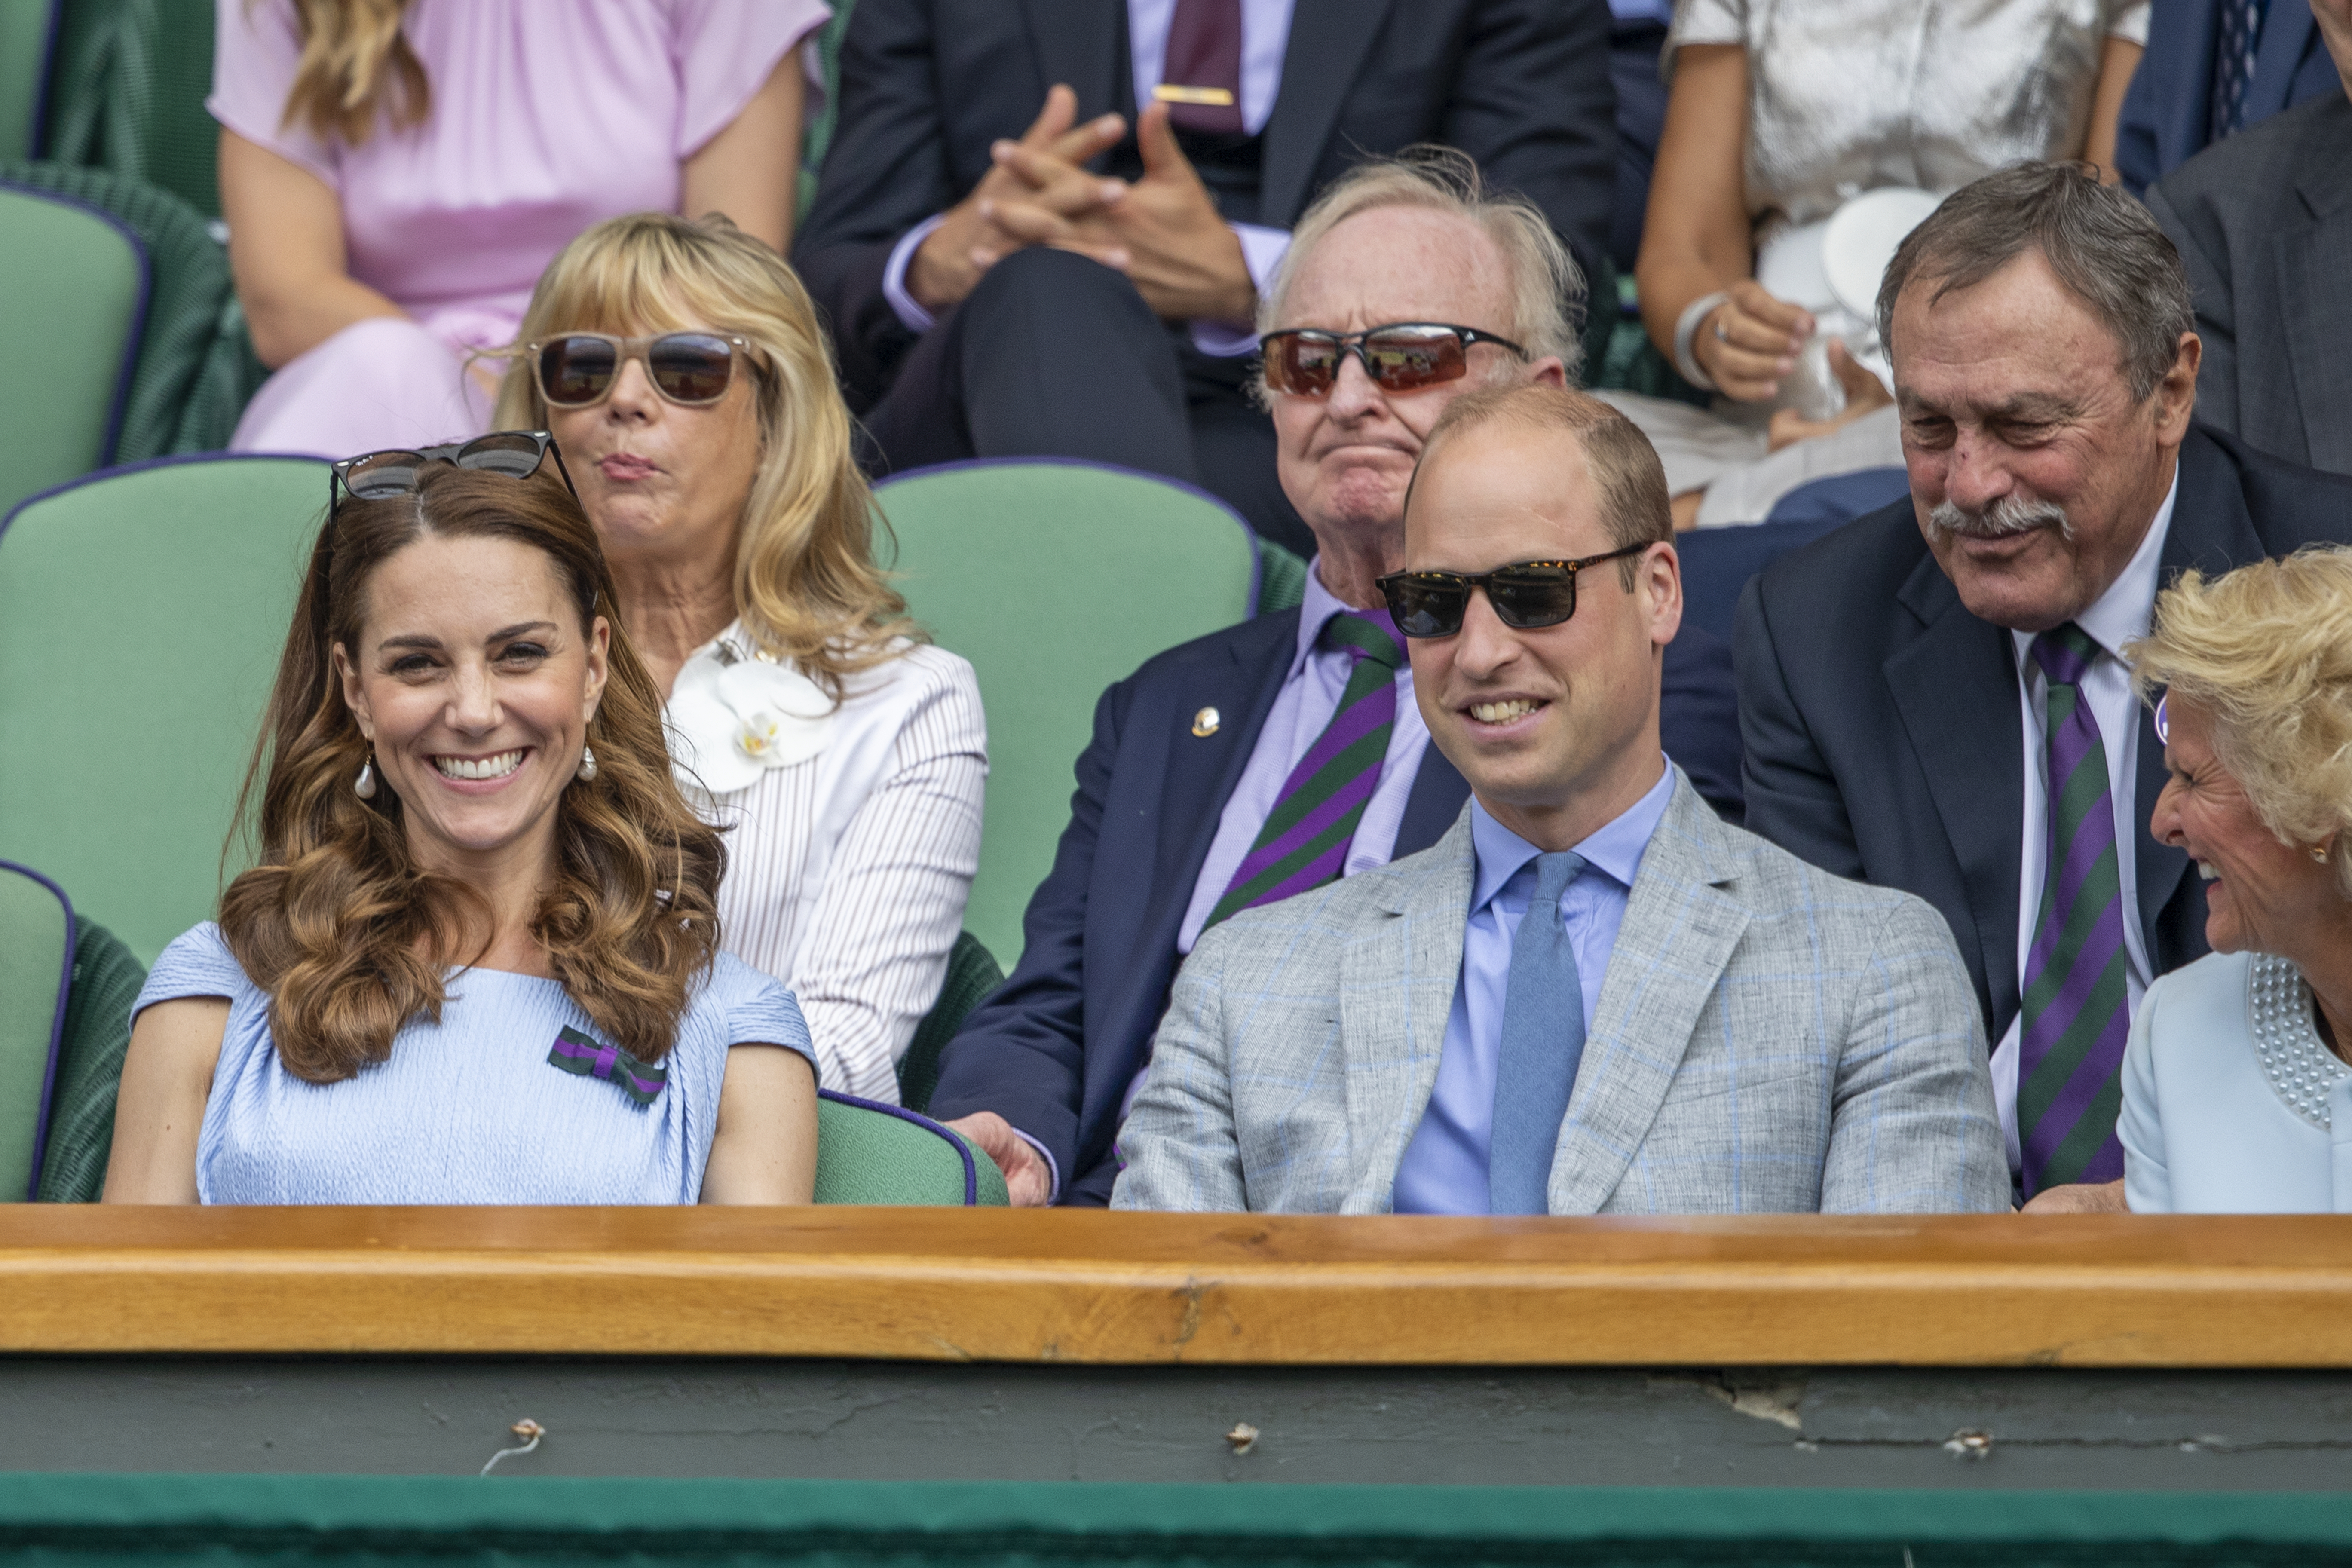 LONDON, ENGLAND - July 14:  Australian tennis legends John Newcombe and Rod Laver with Catherine, Duchess of Cambridge and Prince William, Duke of Cambridge in the Royal Box on Centre court during Men's Finals Day during the Wimbledon Lawn Tennis Championships at the All England Lawn Tennis and Croquet Club at Wimbledon on July 14, 2019 in London, England. (Photo by Tim Clayton/Corbis via Getty Images)